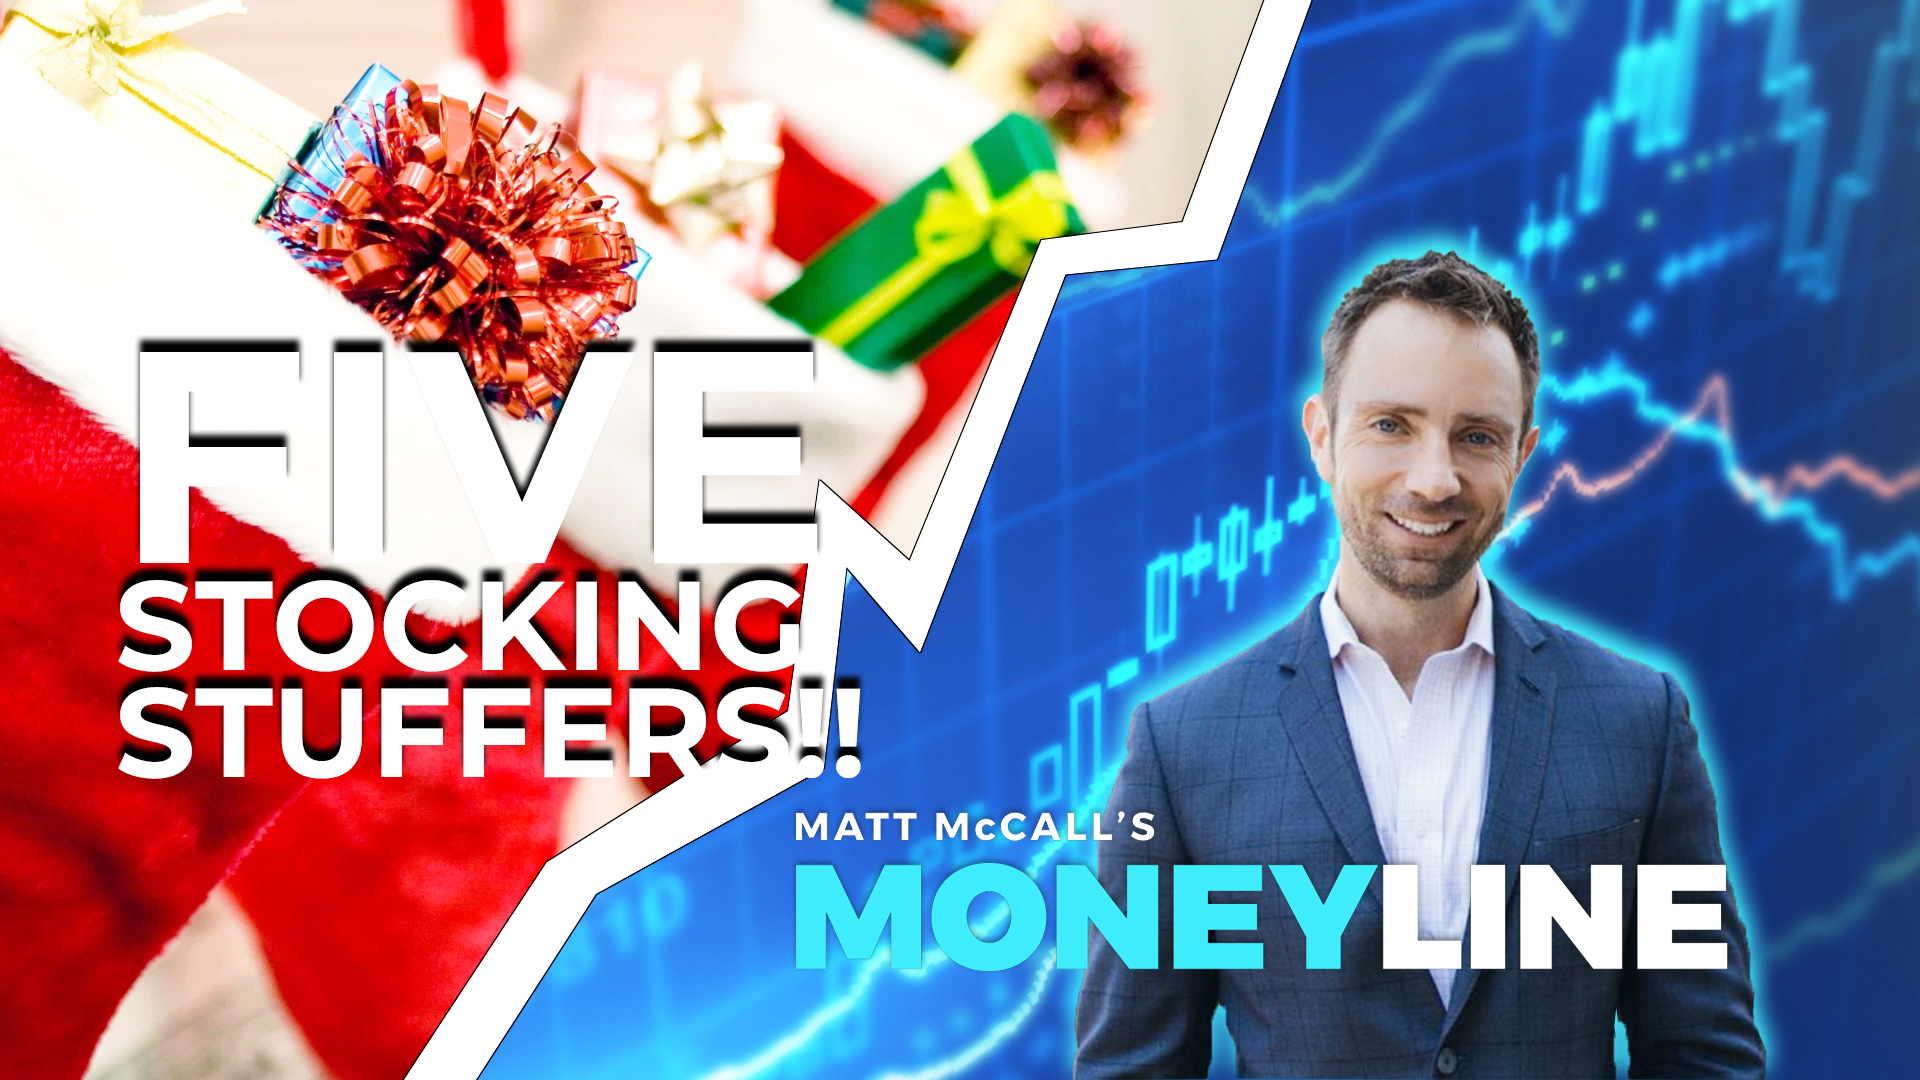 Matt McCall's Moneyline: Five Stocking Stuffers